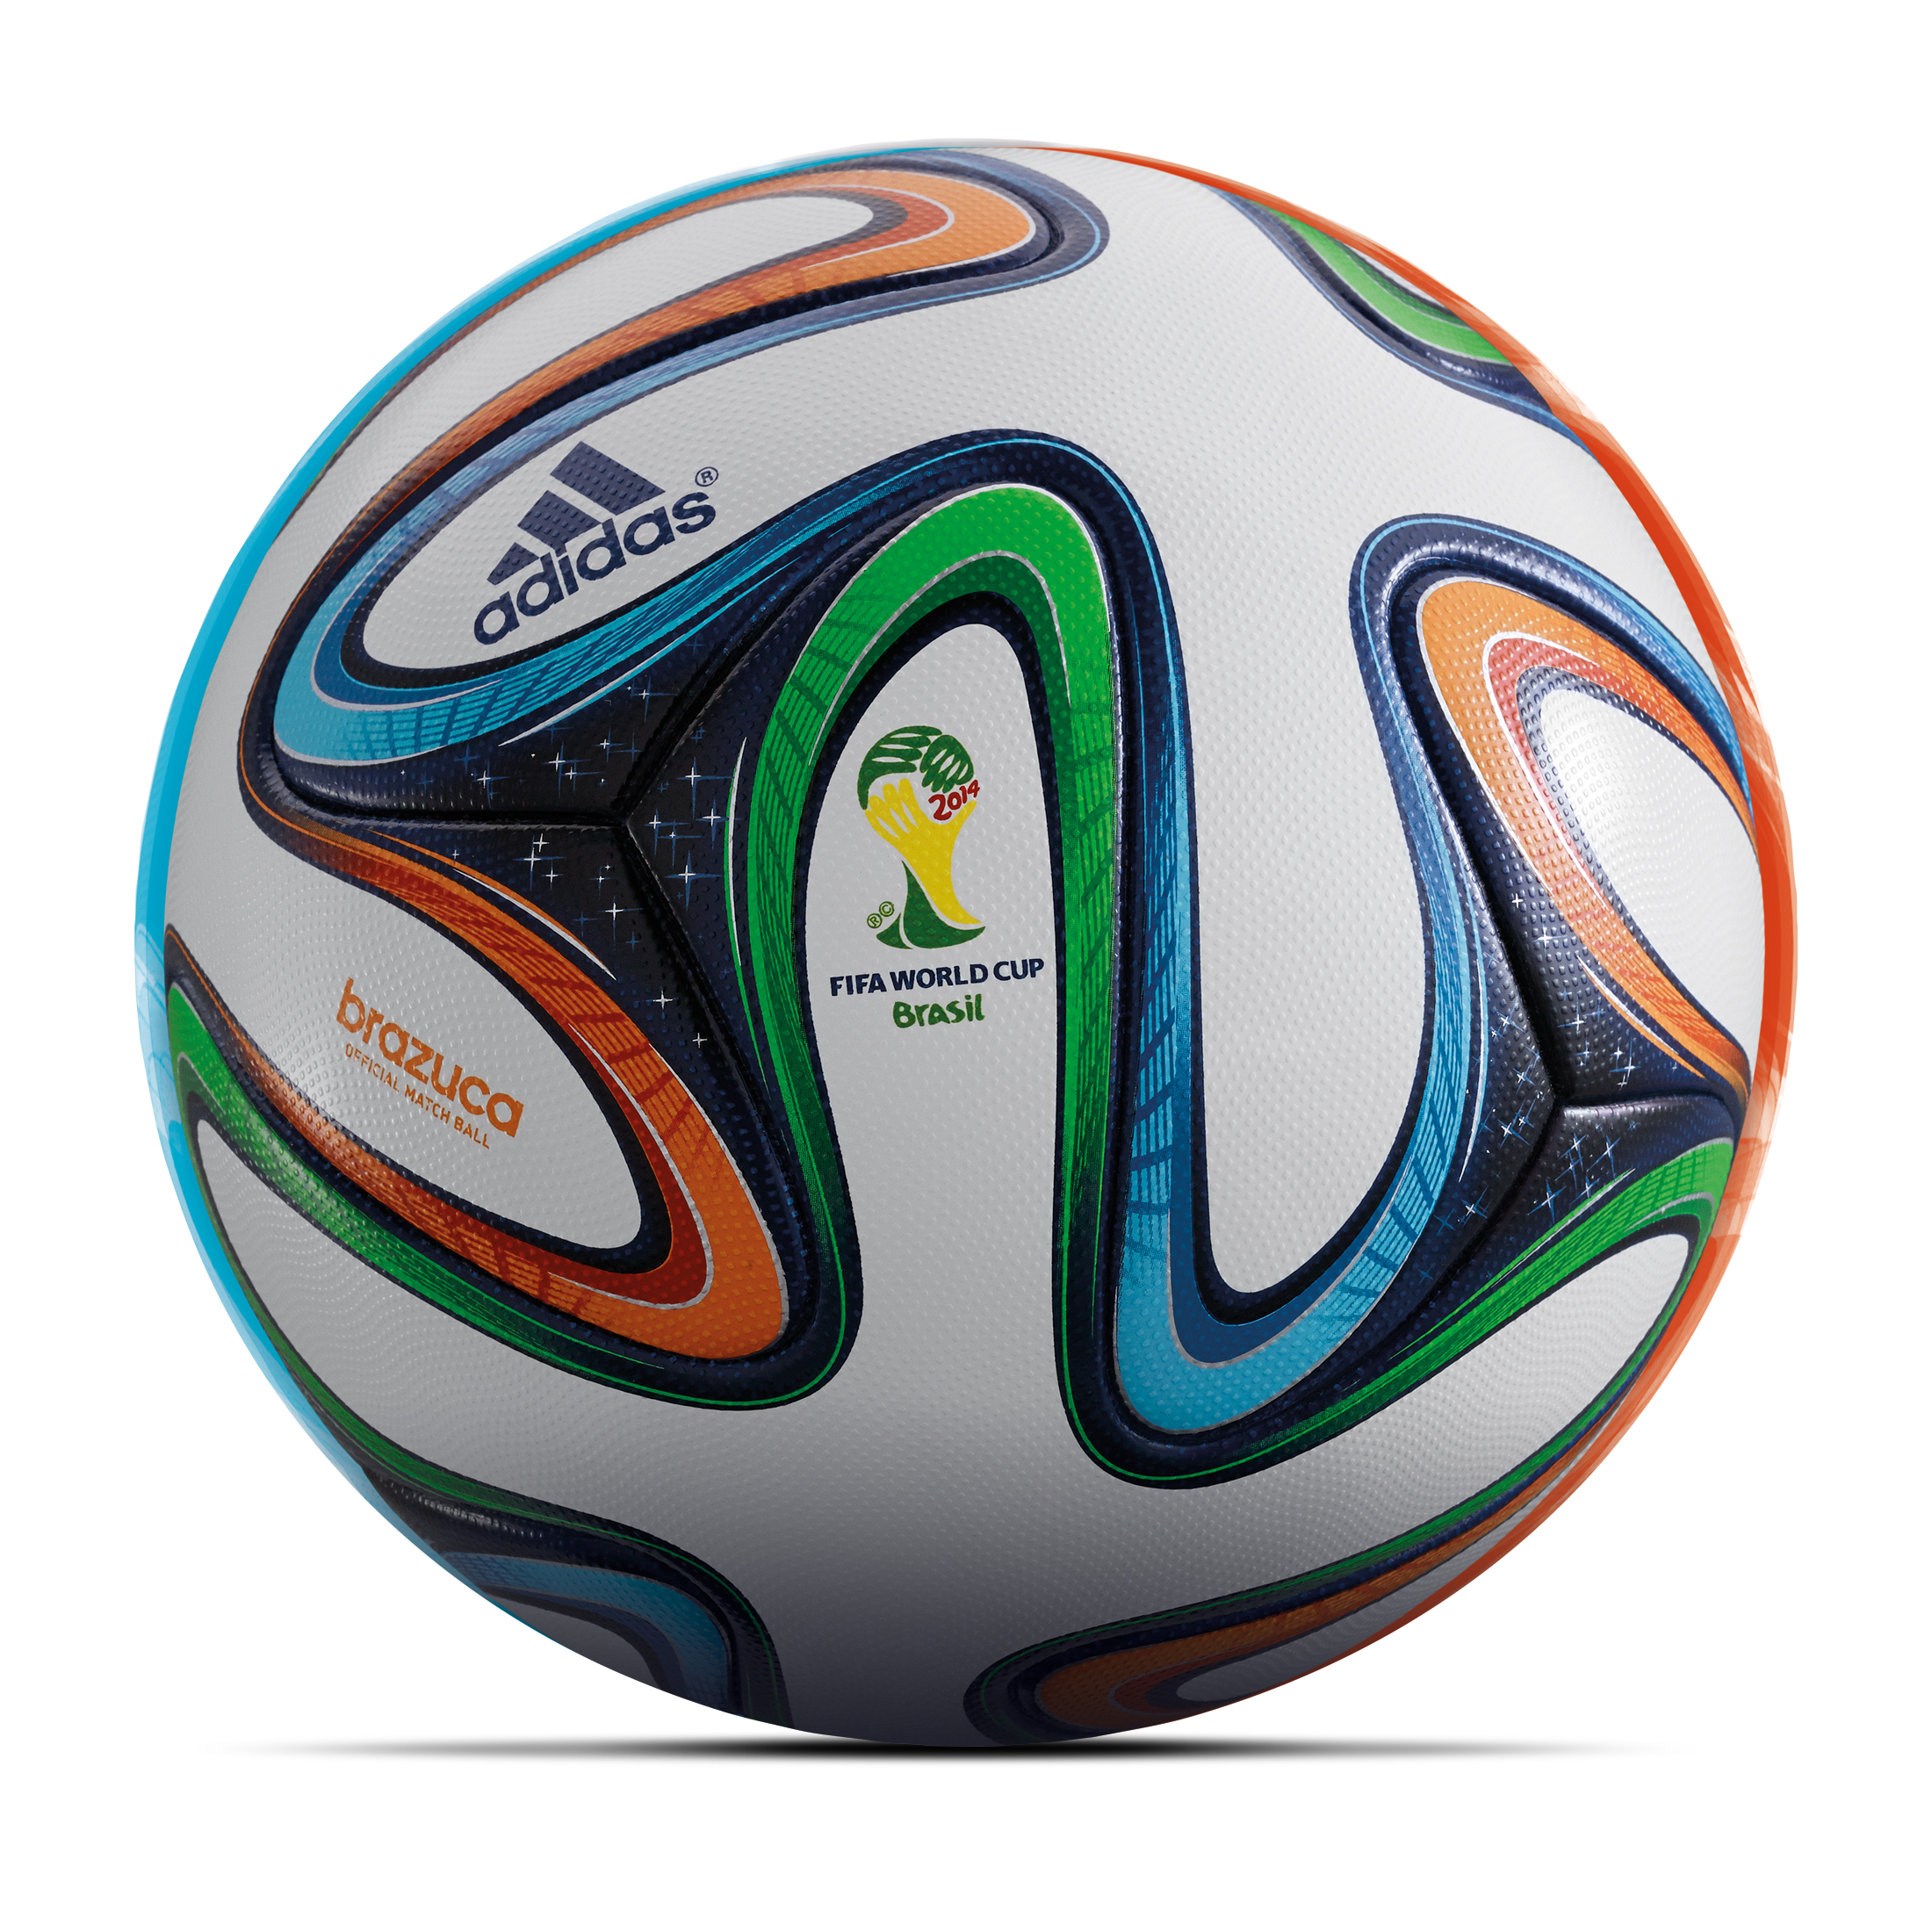 Adidas Brazuca World Cup 2014 Official Match Ball - Size 5